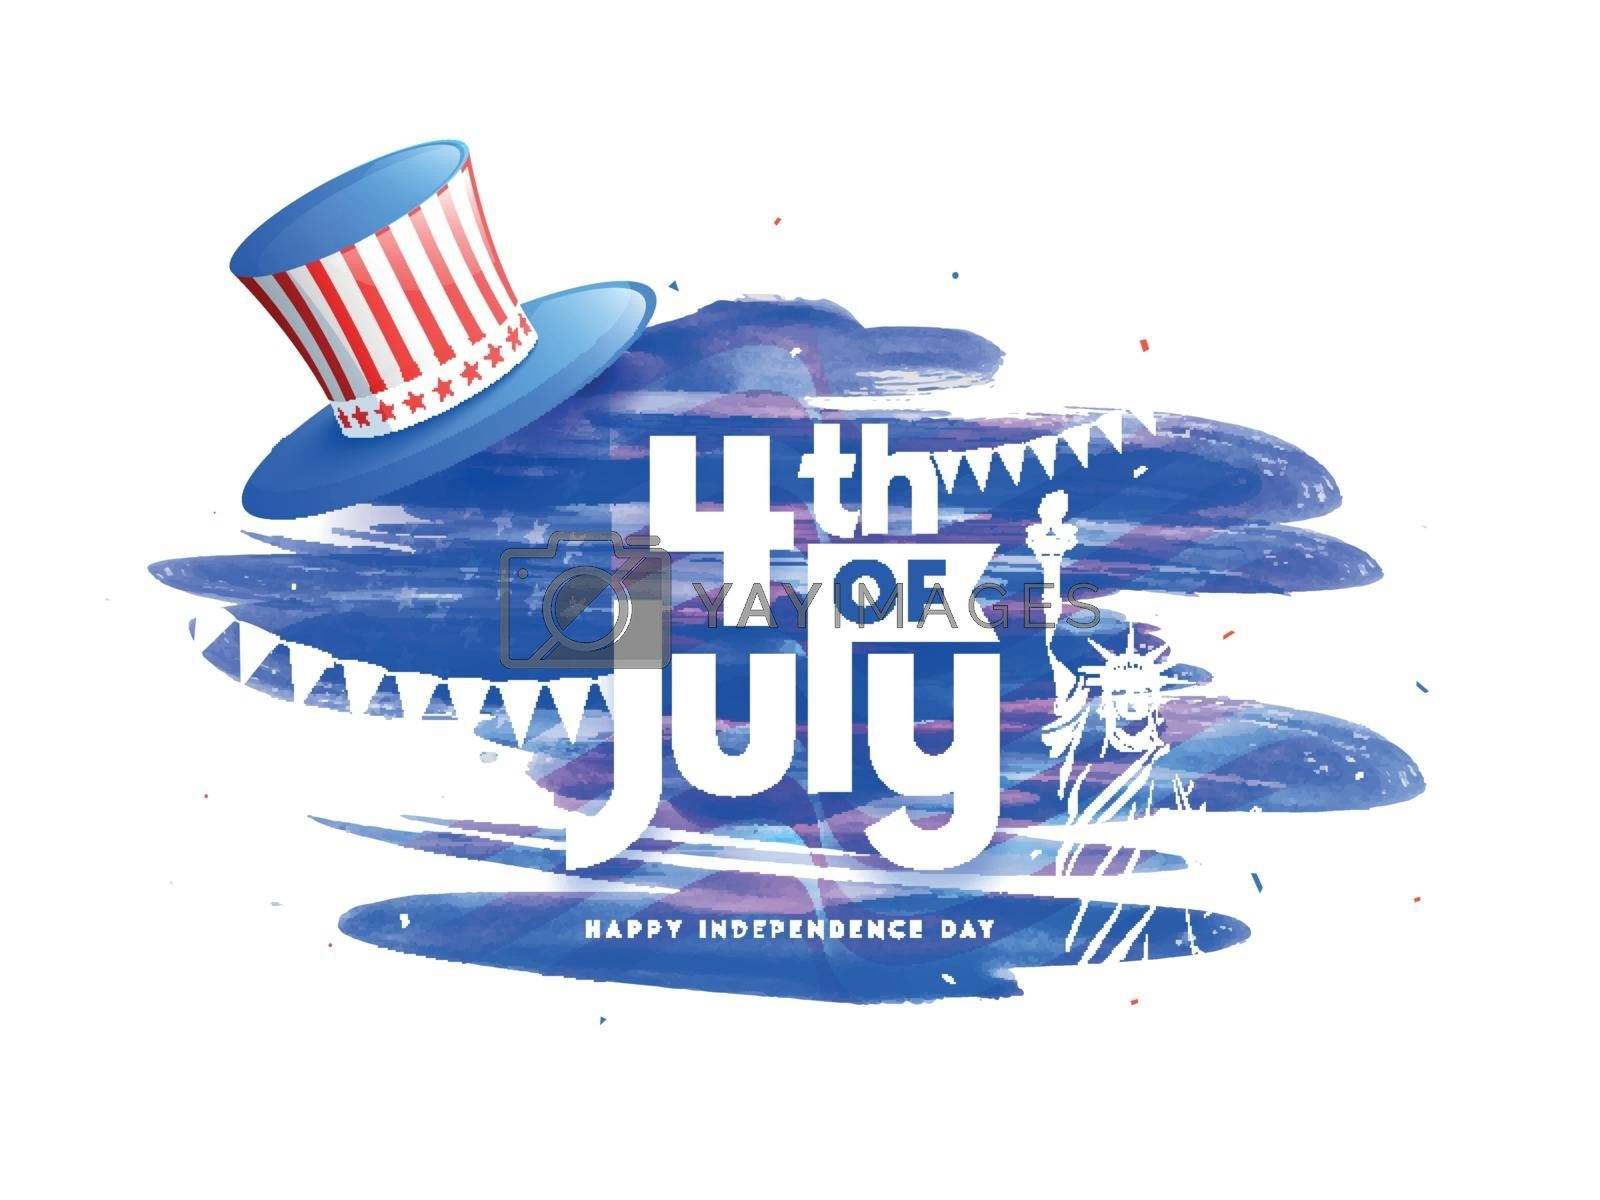 4th Of July text with uncle sam hat on brush stroke background for Happy Independence Day celebration. Banner or poster design.